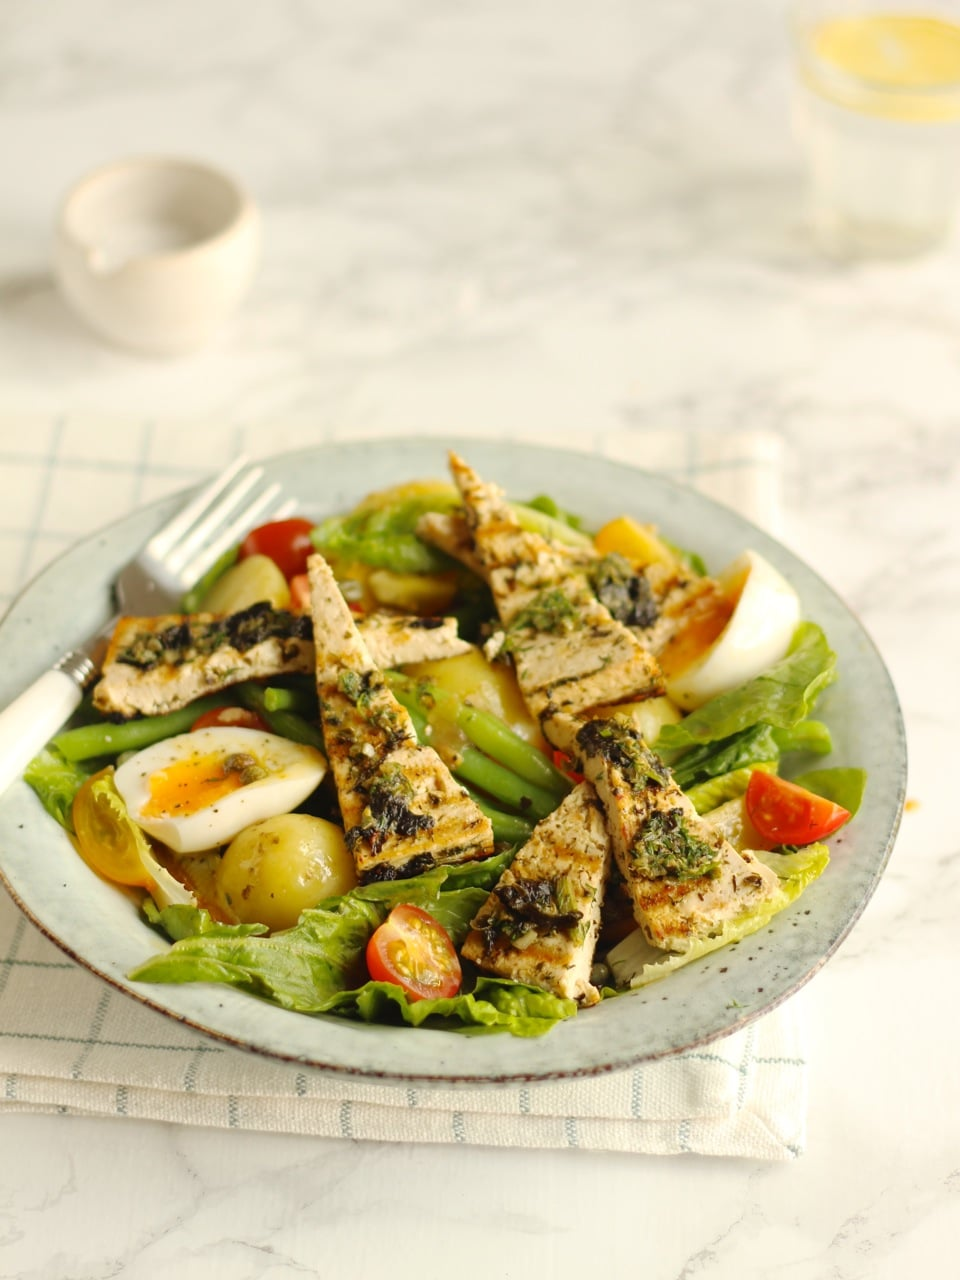 Tofu Nicoise Salad, a vegetarian or vegan take on this French Salad | Natural Kitchen Adventures